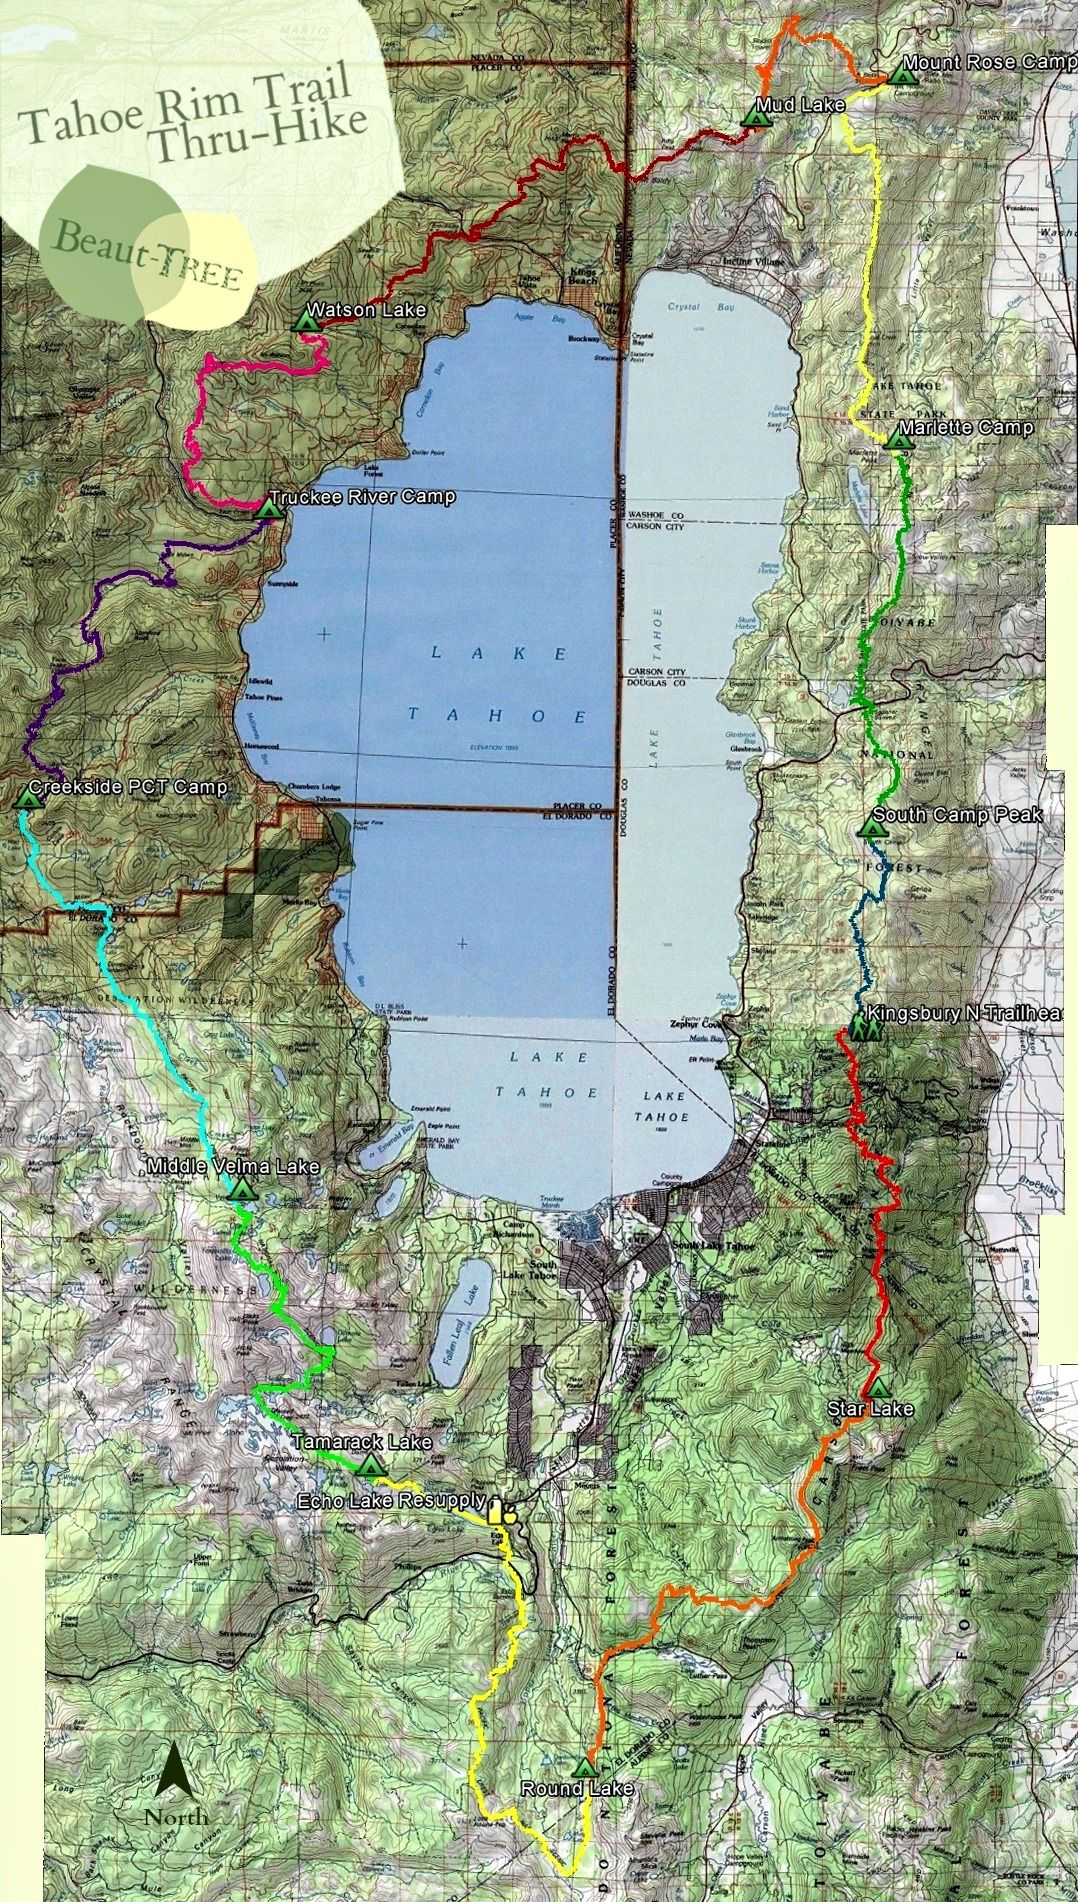 Tahoe Rim Trail Map | TRT | Pinterest | Trail maps, Hiking and Lake on pine grove trail map, alexandria trail map, concord trail map, pennsylvania trail map, summit ridge trail map, georgetown trail map, morgan creek trail map, emerald ridge trail map, jefferson trail map, laurel ridge trail map, ironhorse trail map, beech creek trail map, sycamore trail map, north woods trail map, timber ridge trail map, brownsville trail map, fisher farm trail map, spring mill trail map, north carolina trail map, heritage park trail map,